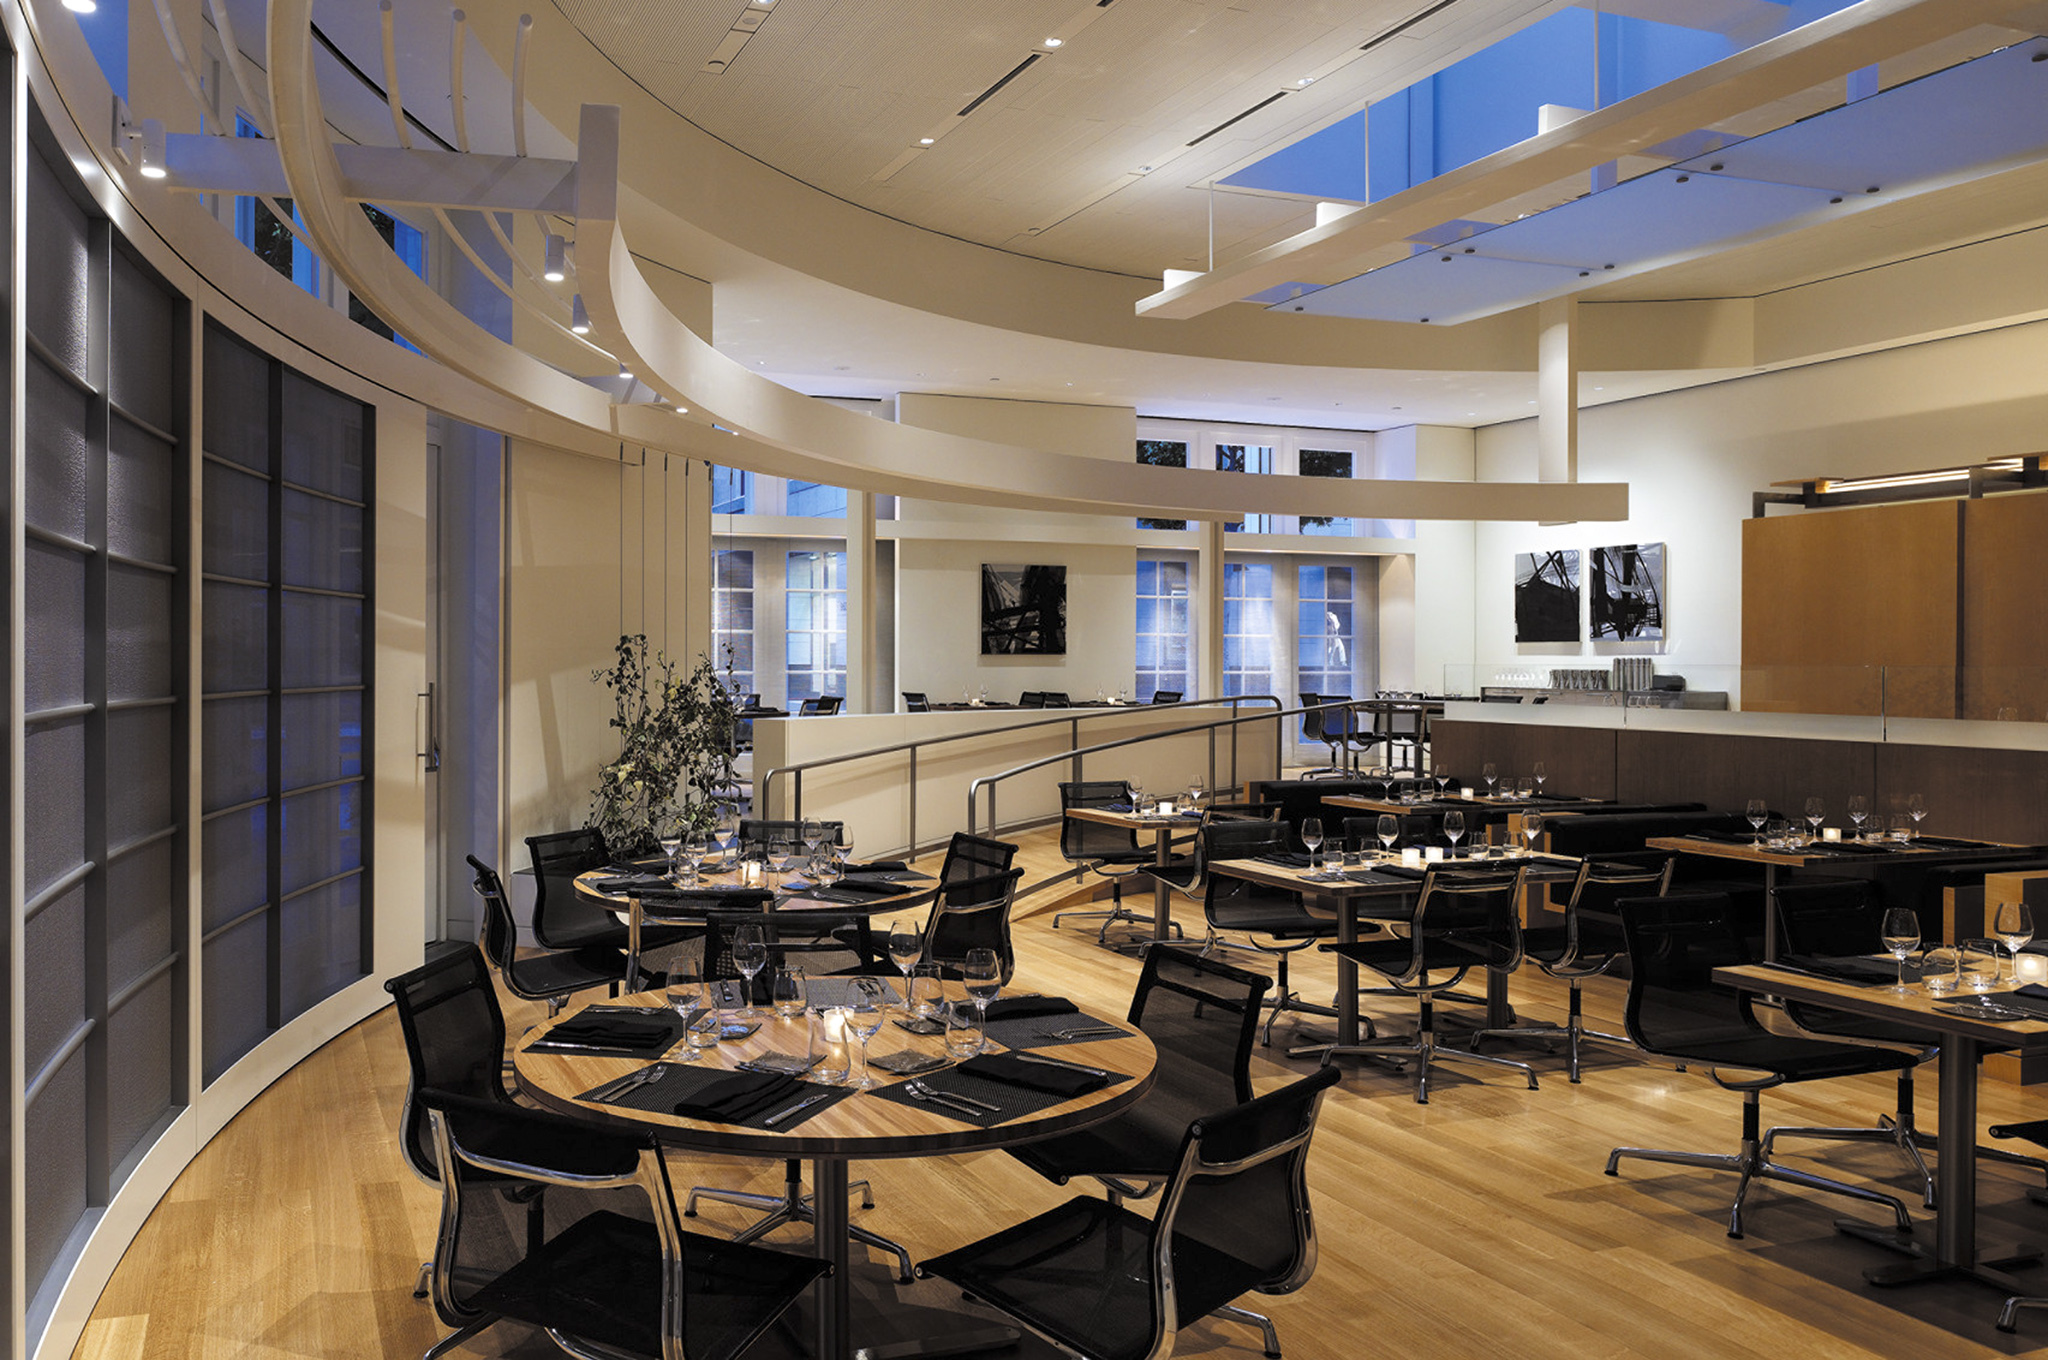 Cut Restaurant By Wolfgang Puckregent Beverly Wilshirebeverly Hills